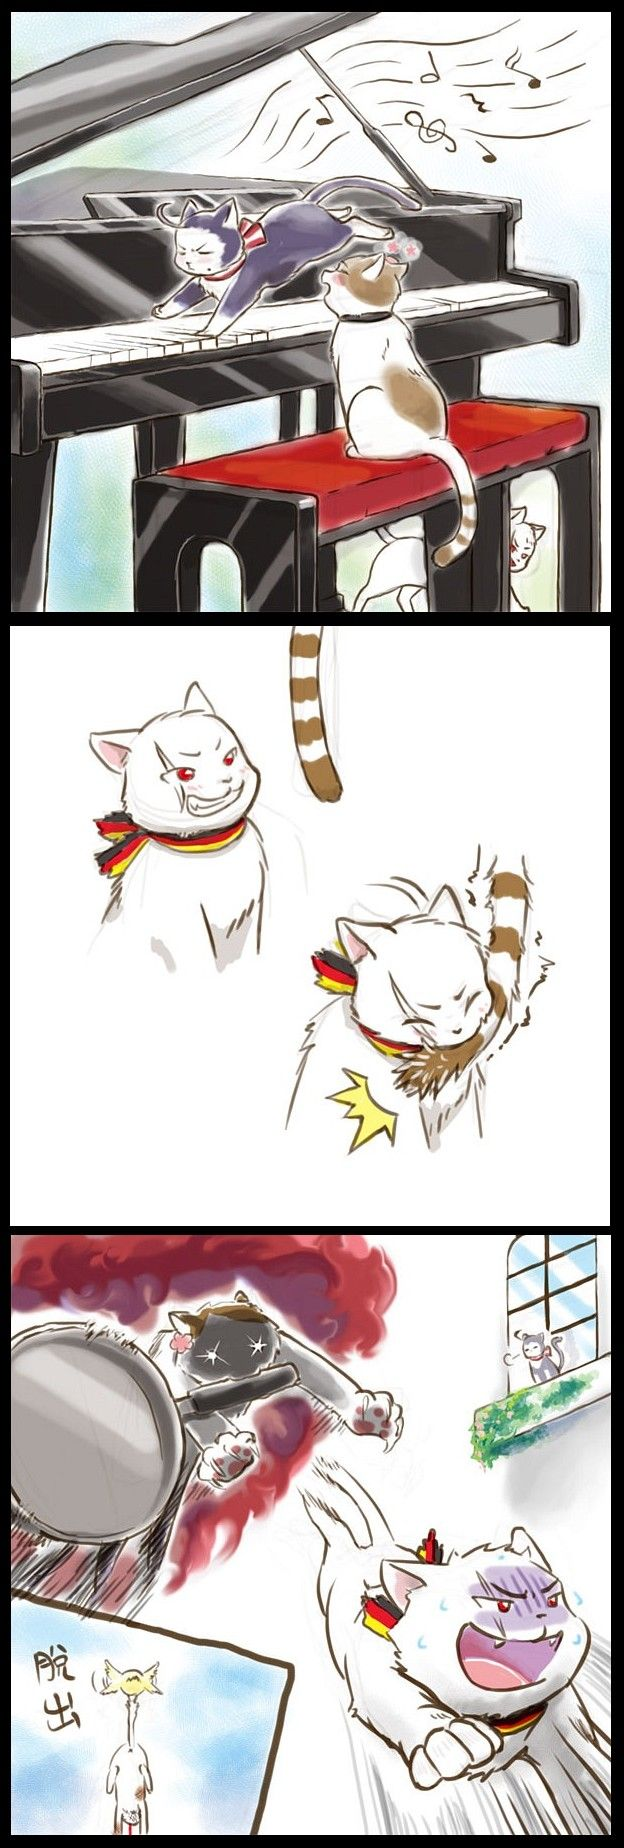 I thought of Aristocats when I saw this!! I thought of the song the kittens sing with their mother at the beginning of the movie.